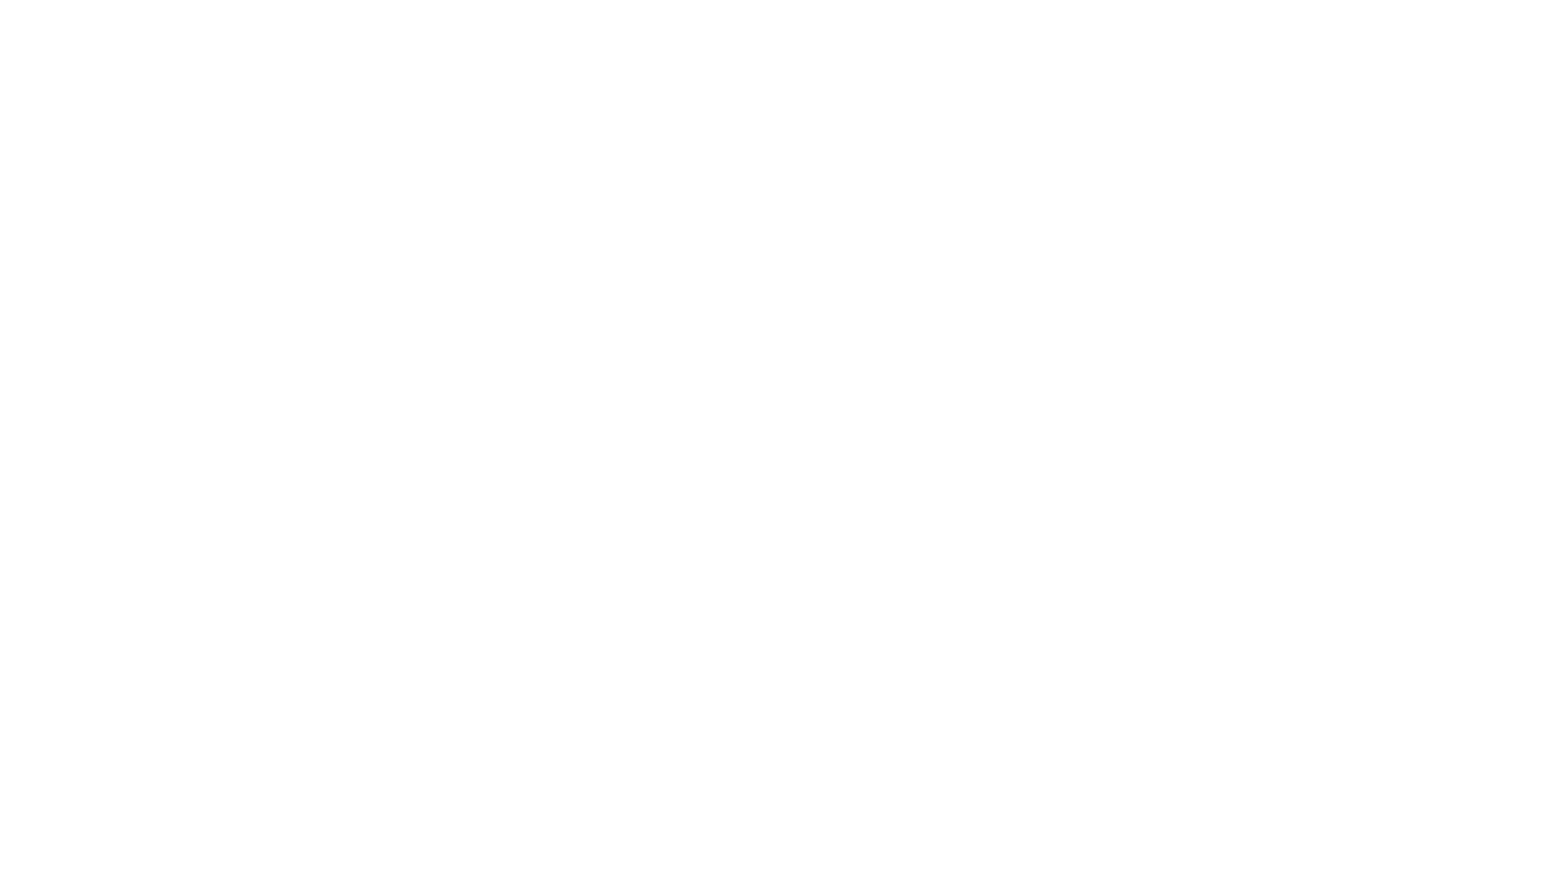 Great icons for iPhone 4 apps by Joseph Wain — Kickstarter